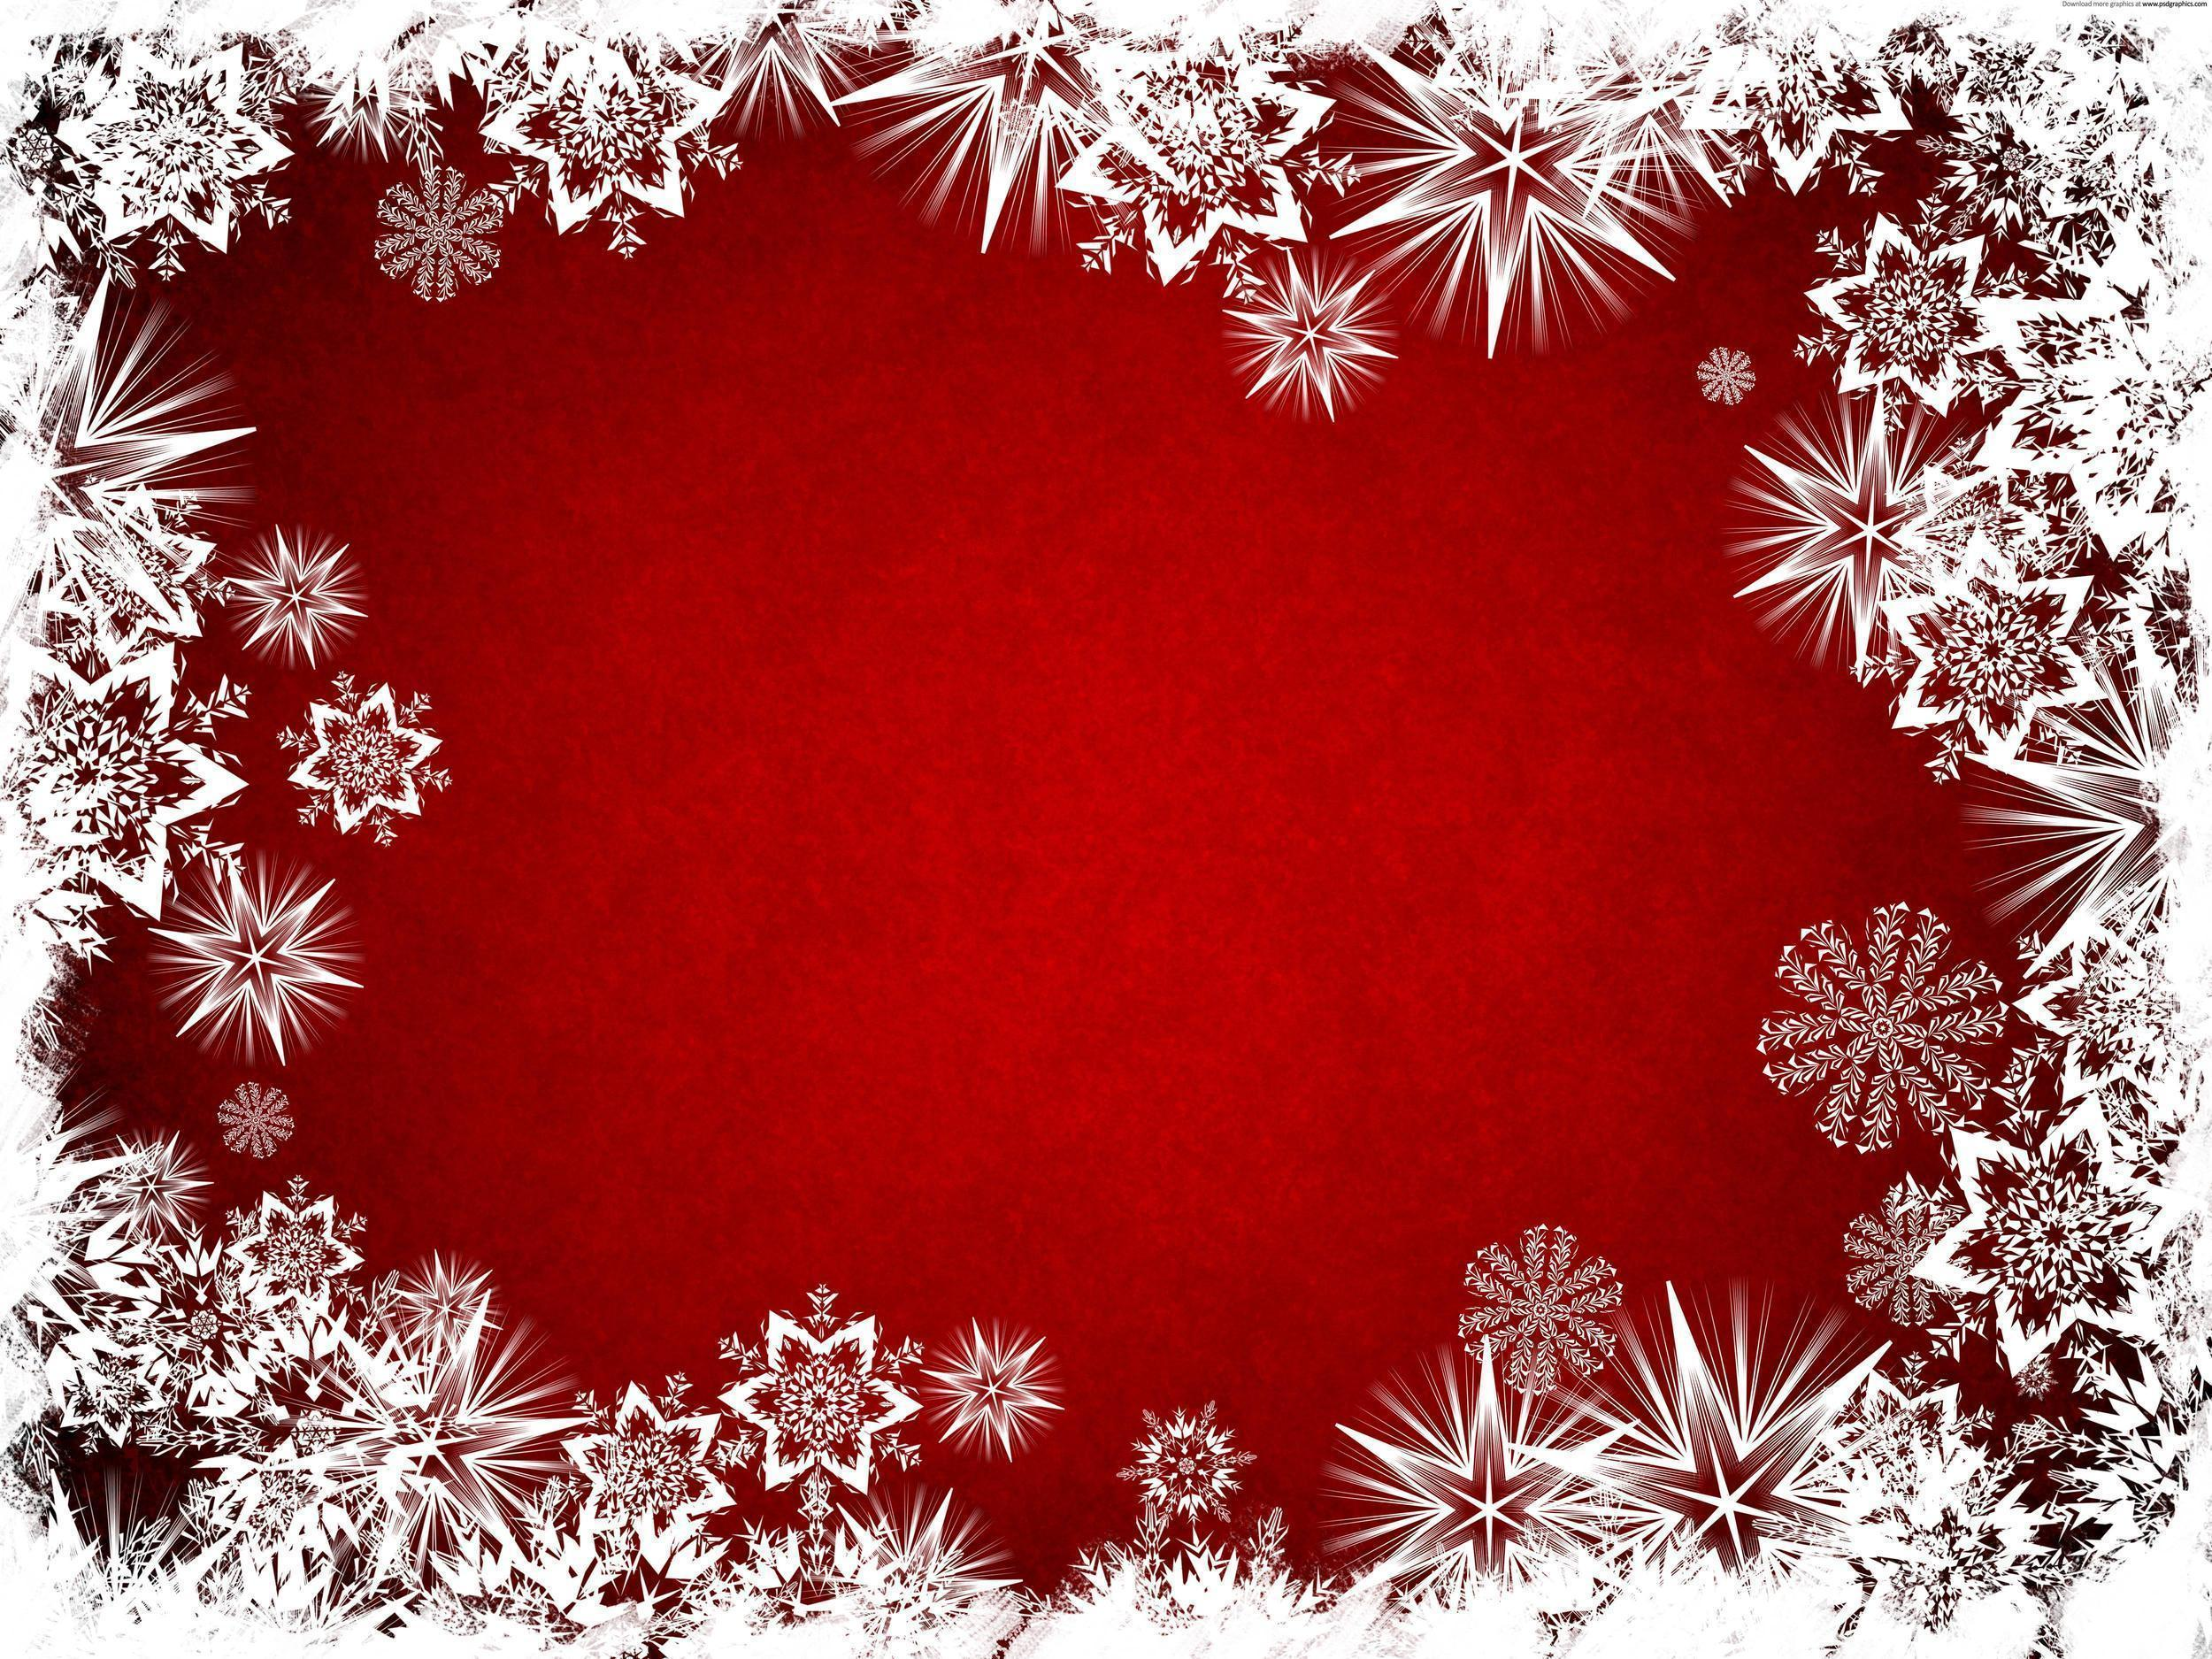 red and white backgrounds cave white stars on a red background on christmas and images